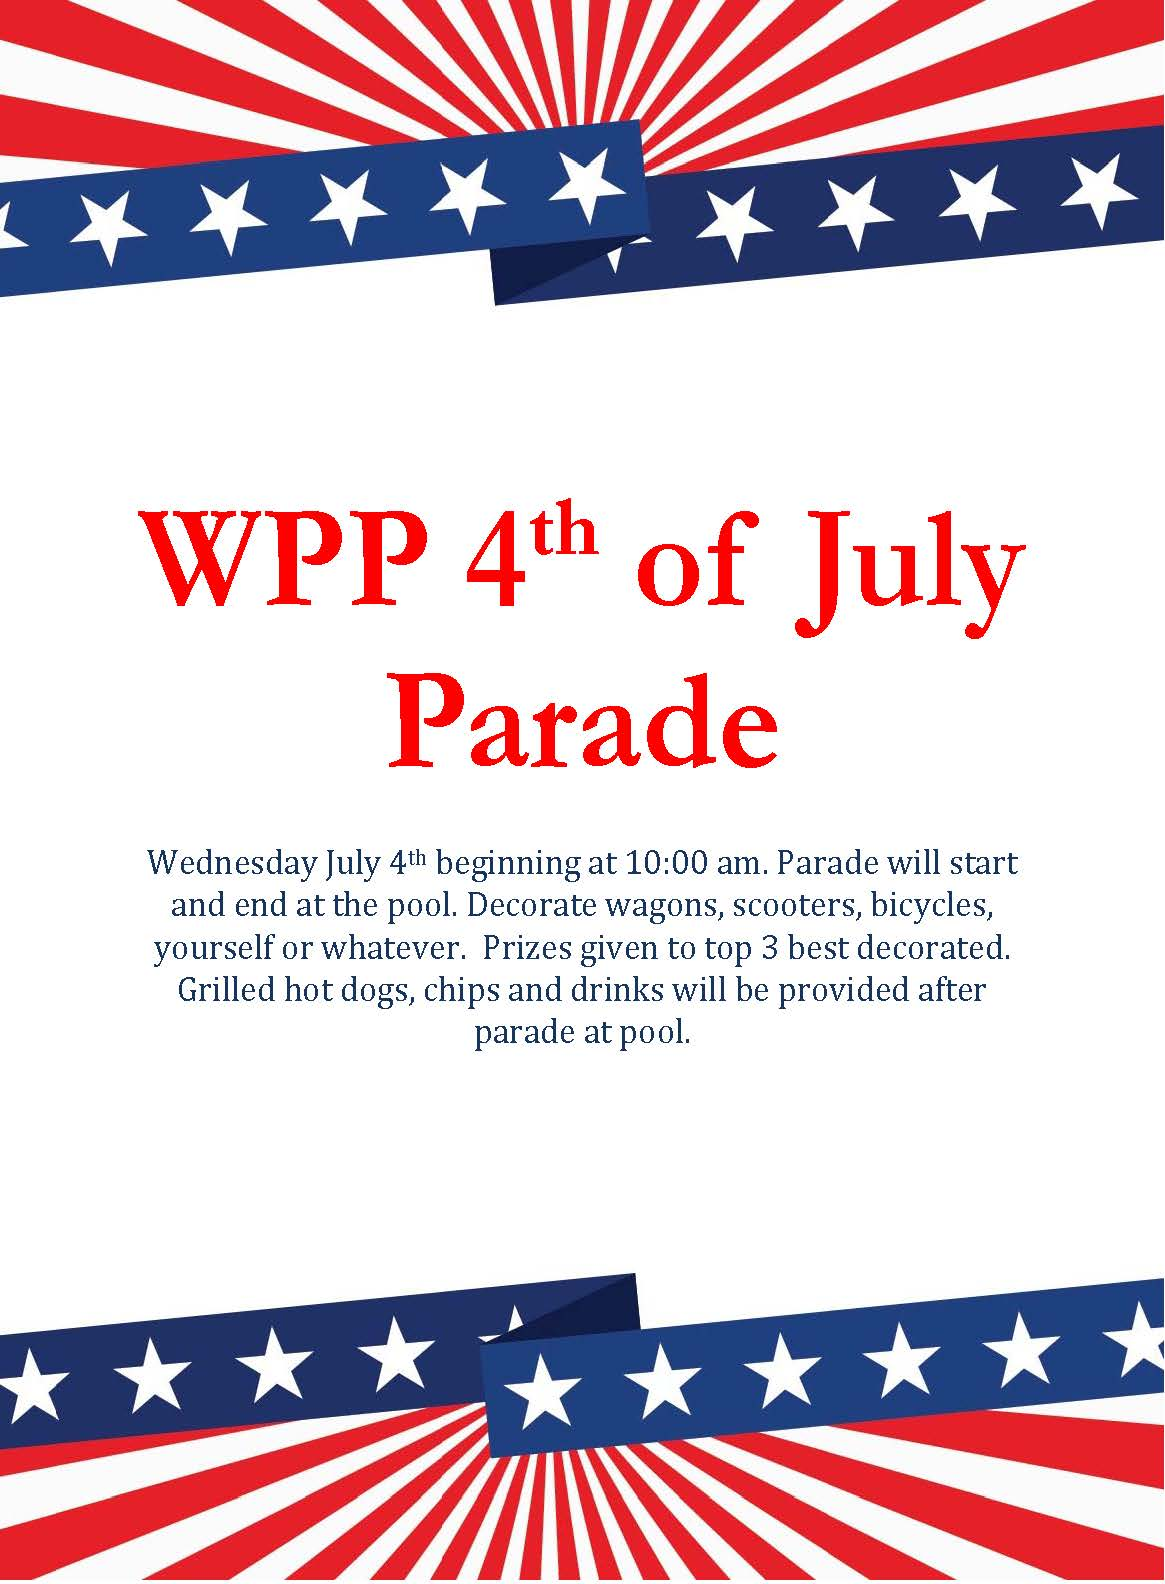 WPP 4th of July Parade